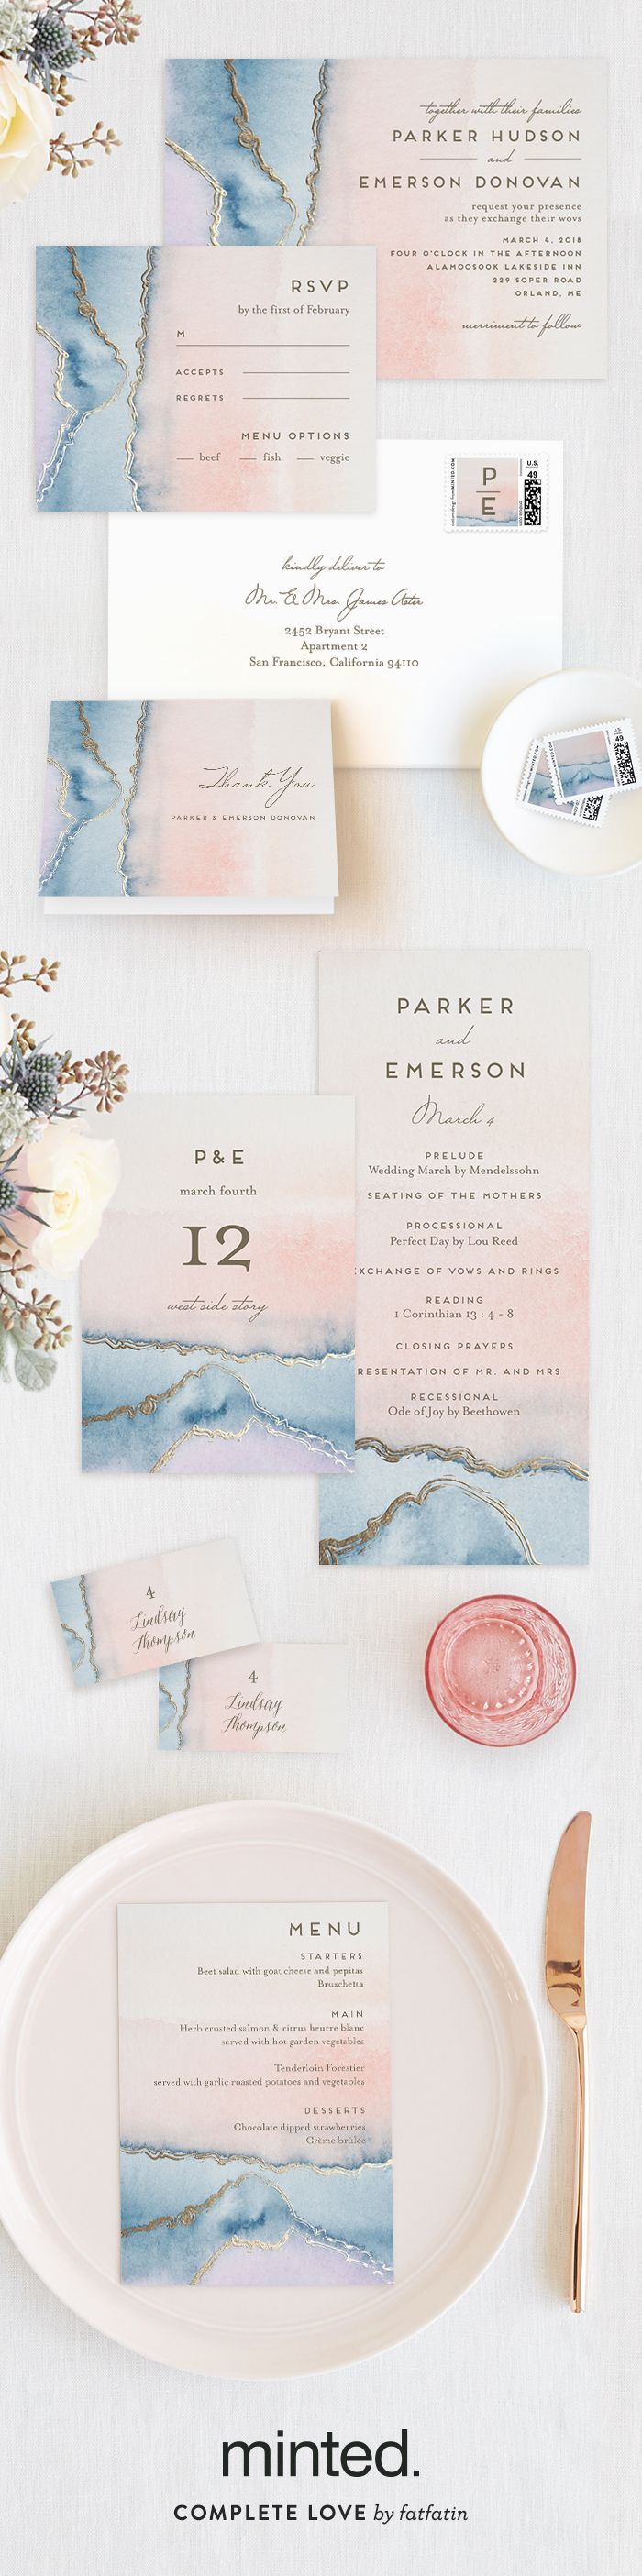 Introducing the Minted 2016 Foil-Pressed Wedding Collection. Shop unique designs for your wedding invitations in unique styles from our community of artists. Simple Agate, geode crystal inspired wedding invitation. // Petra Kern for Minted